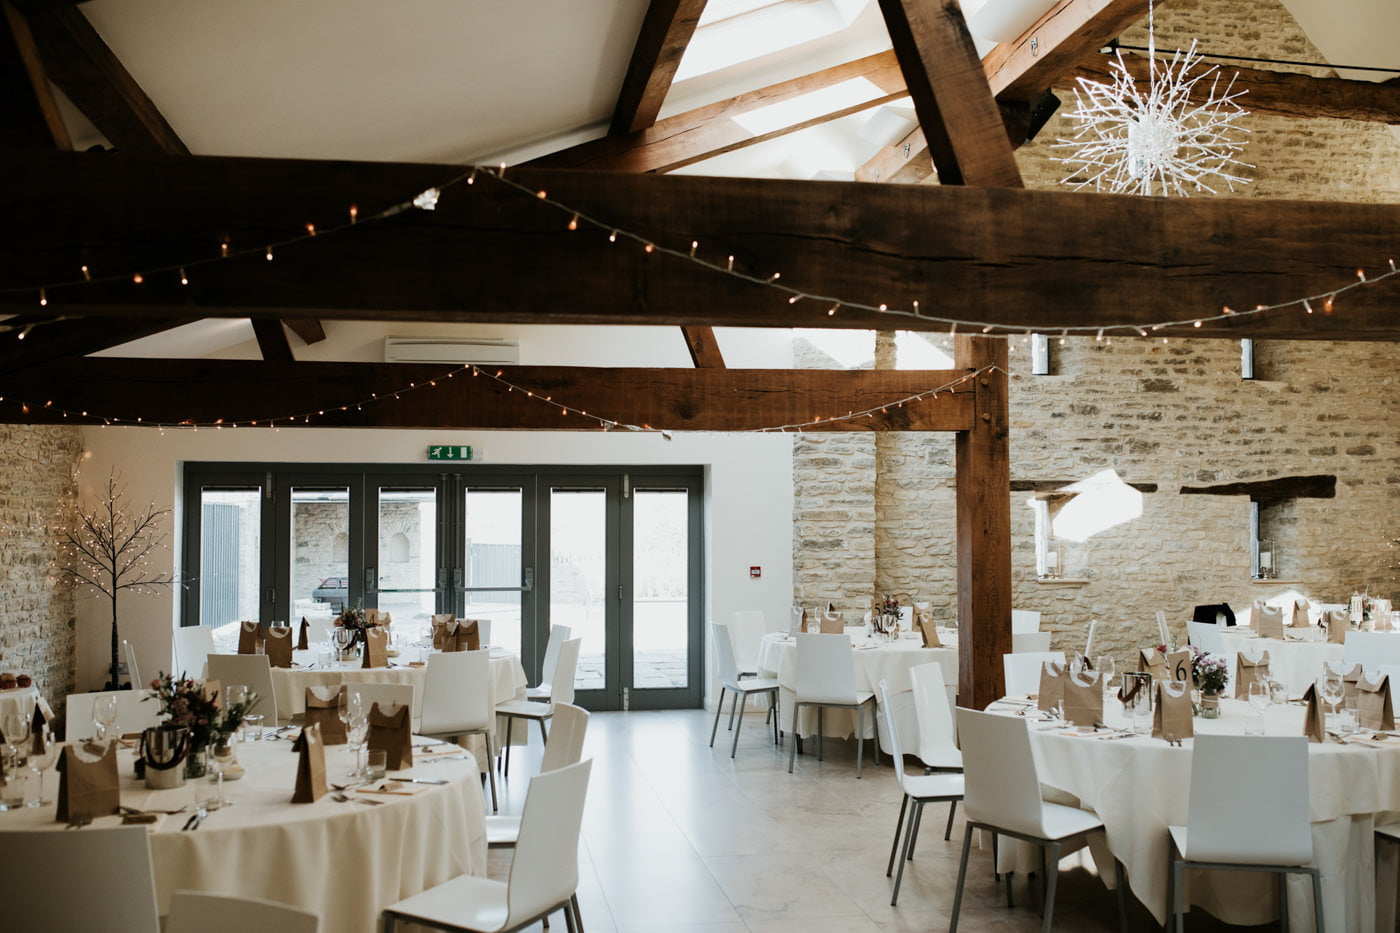 Ruth and Ben, Winkworth Farm, Wiltshire 17